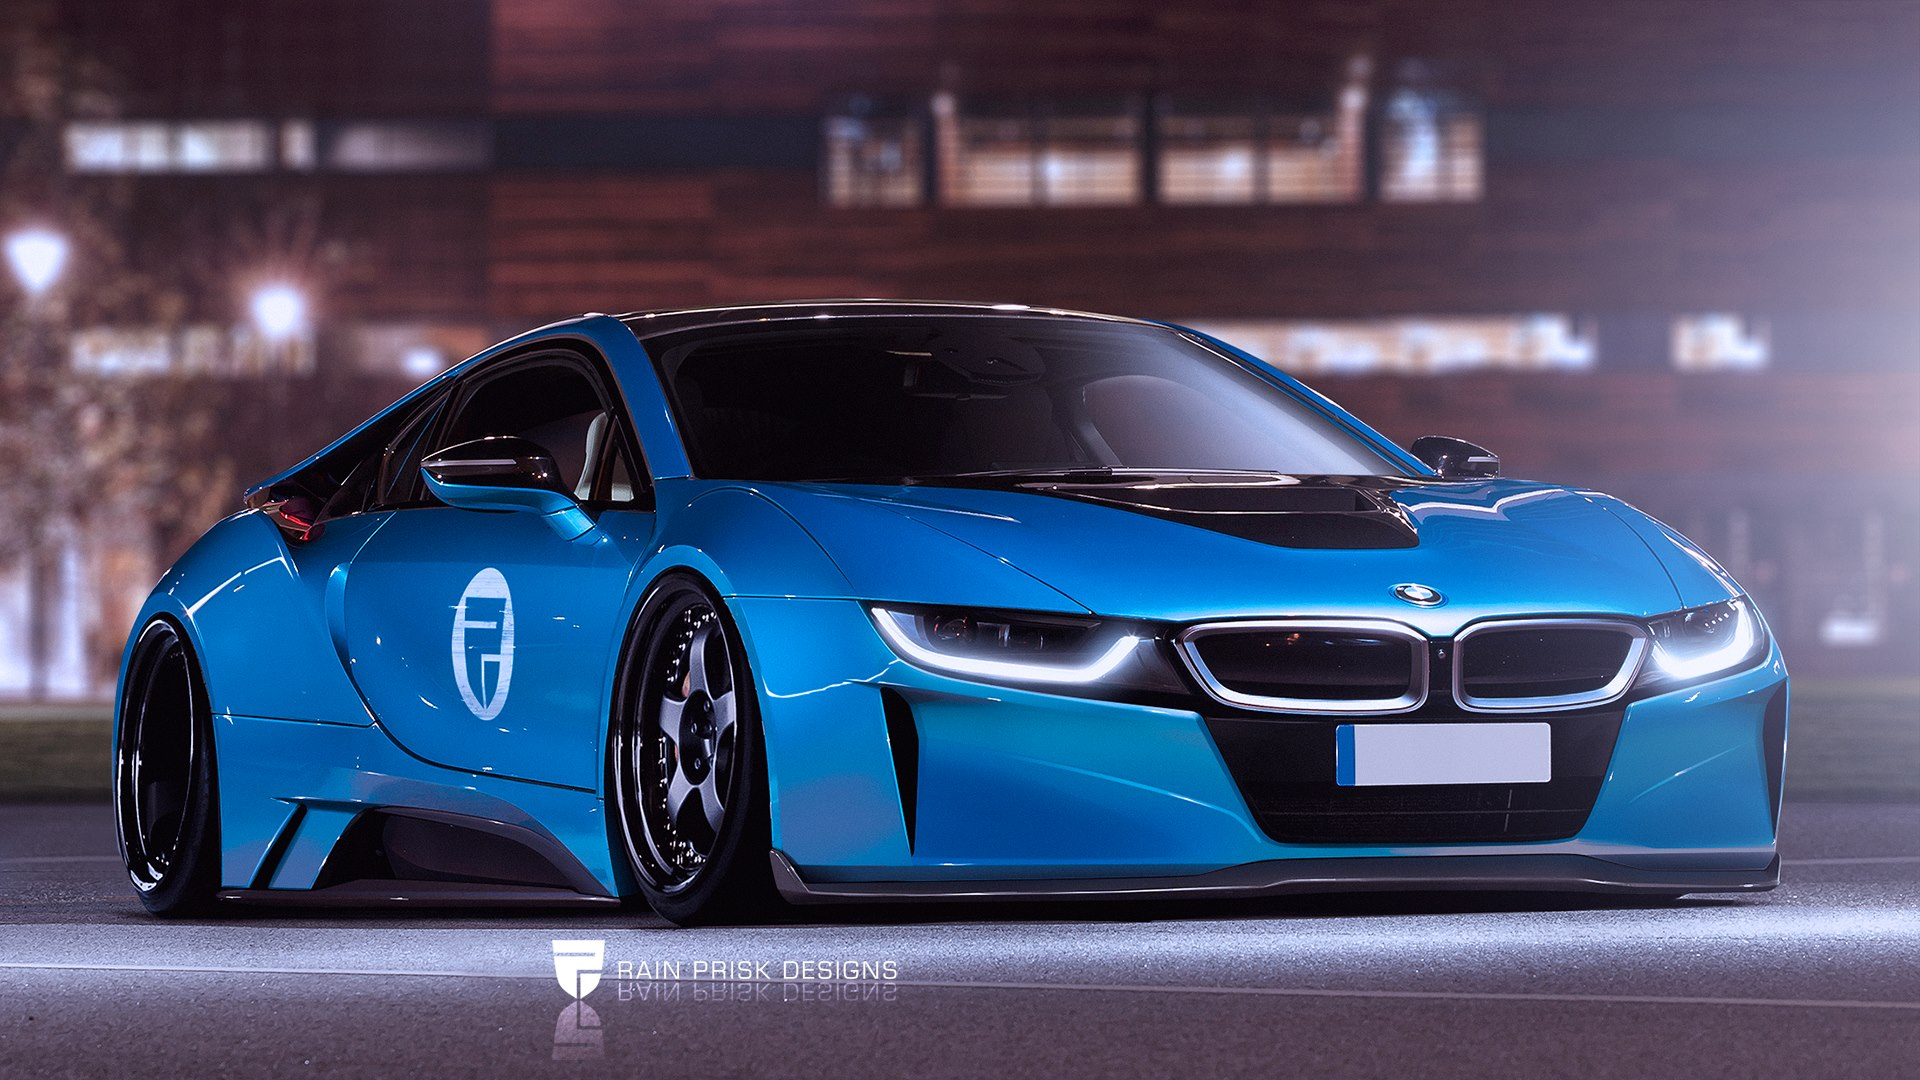 BMW i8 Widebody: Virtual tuning i8 by Rain Prisk Designs